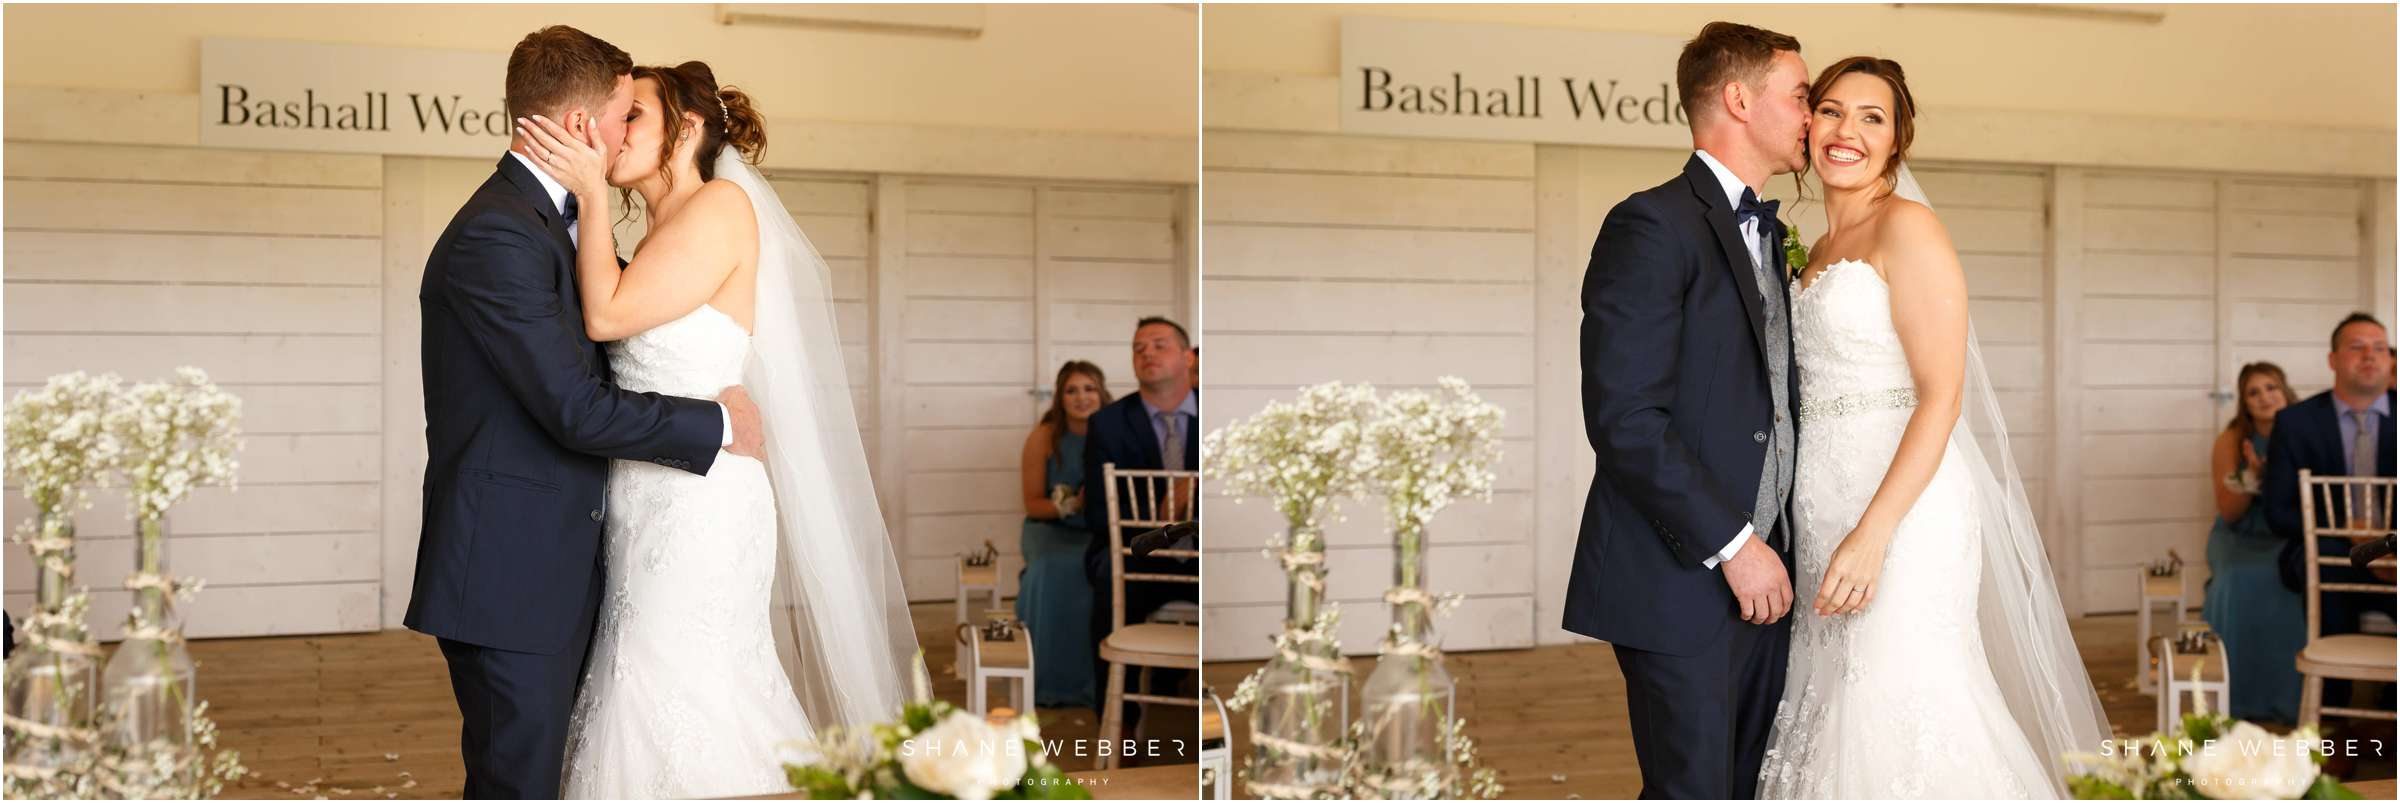 Bashall Barn wedding photos